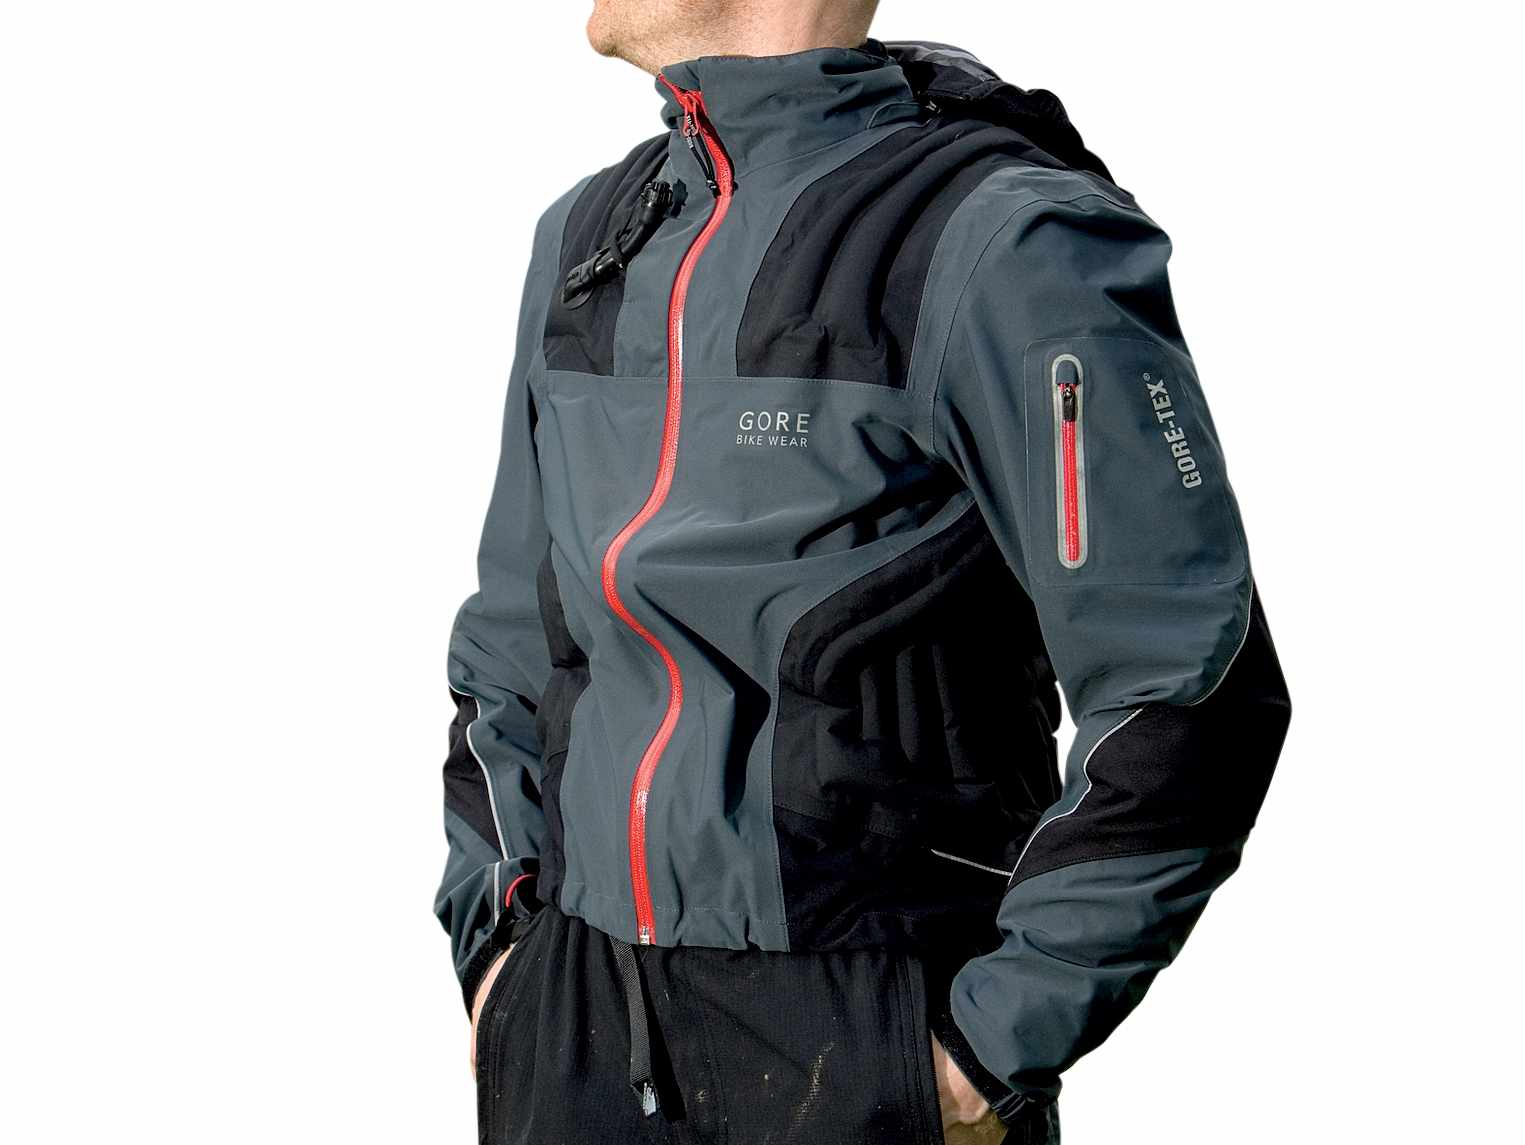 It's not cheap by any means, but the Concept is the ultimate biking jacket.